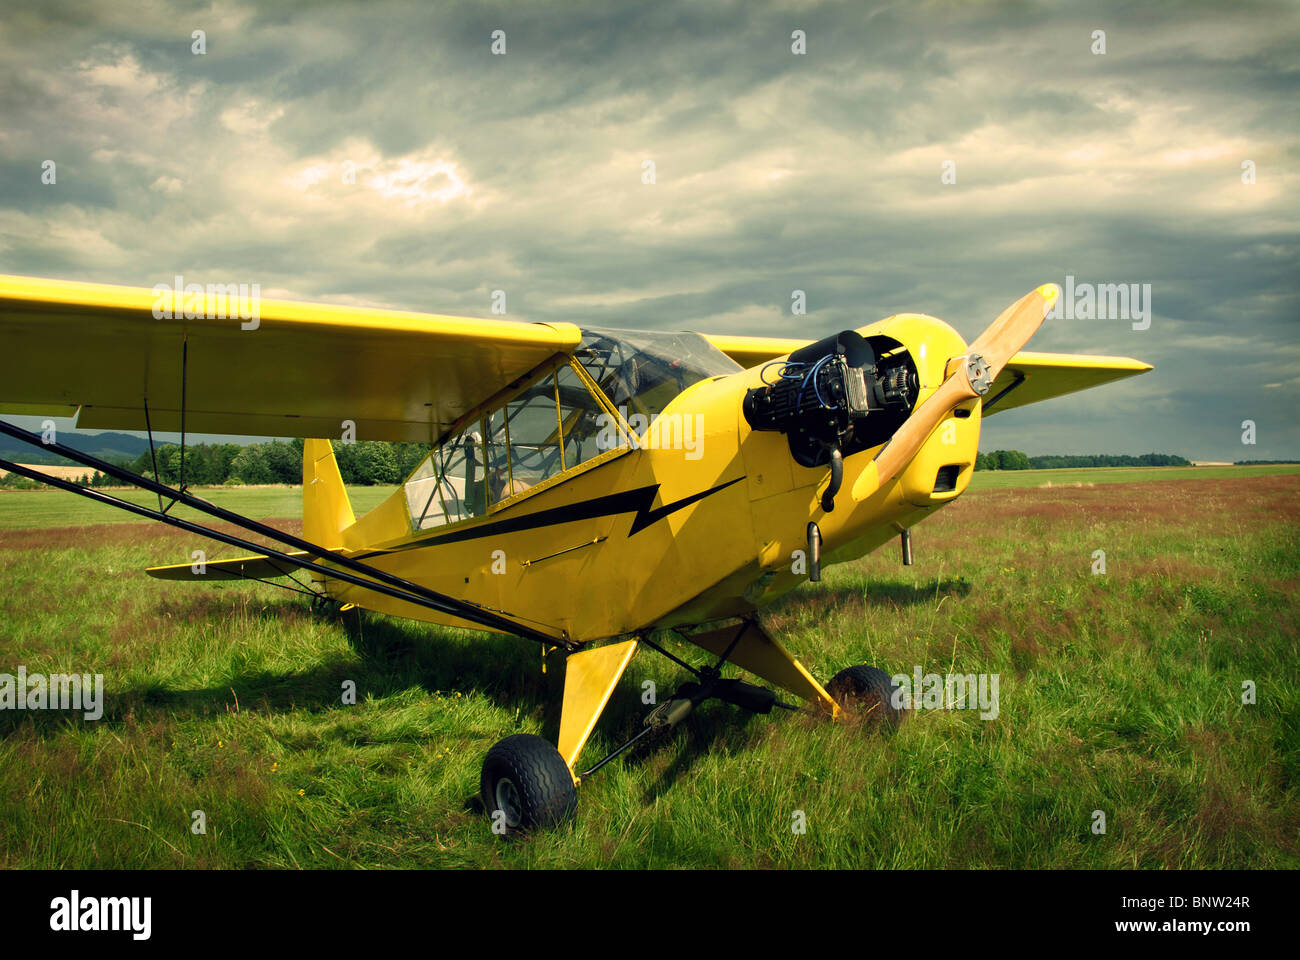 Vintage yellow plane - Stock Image